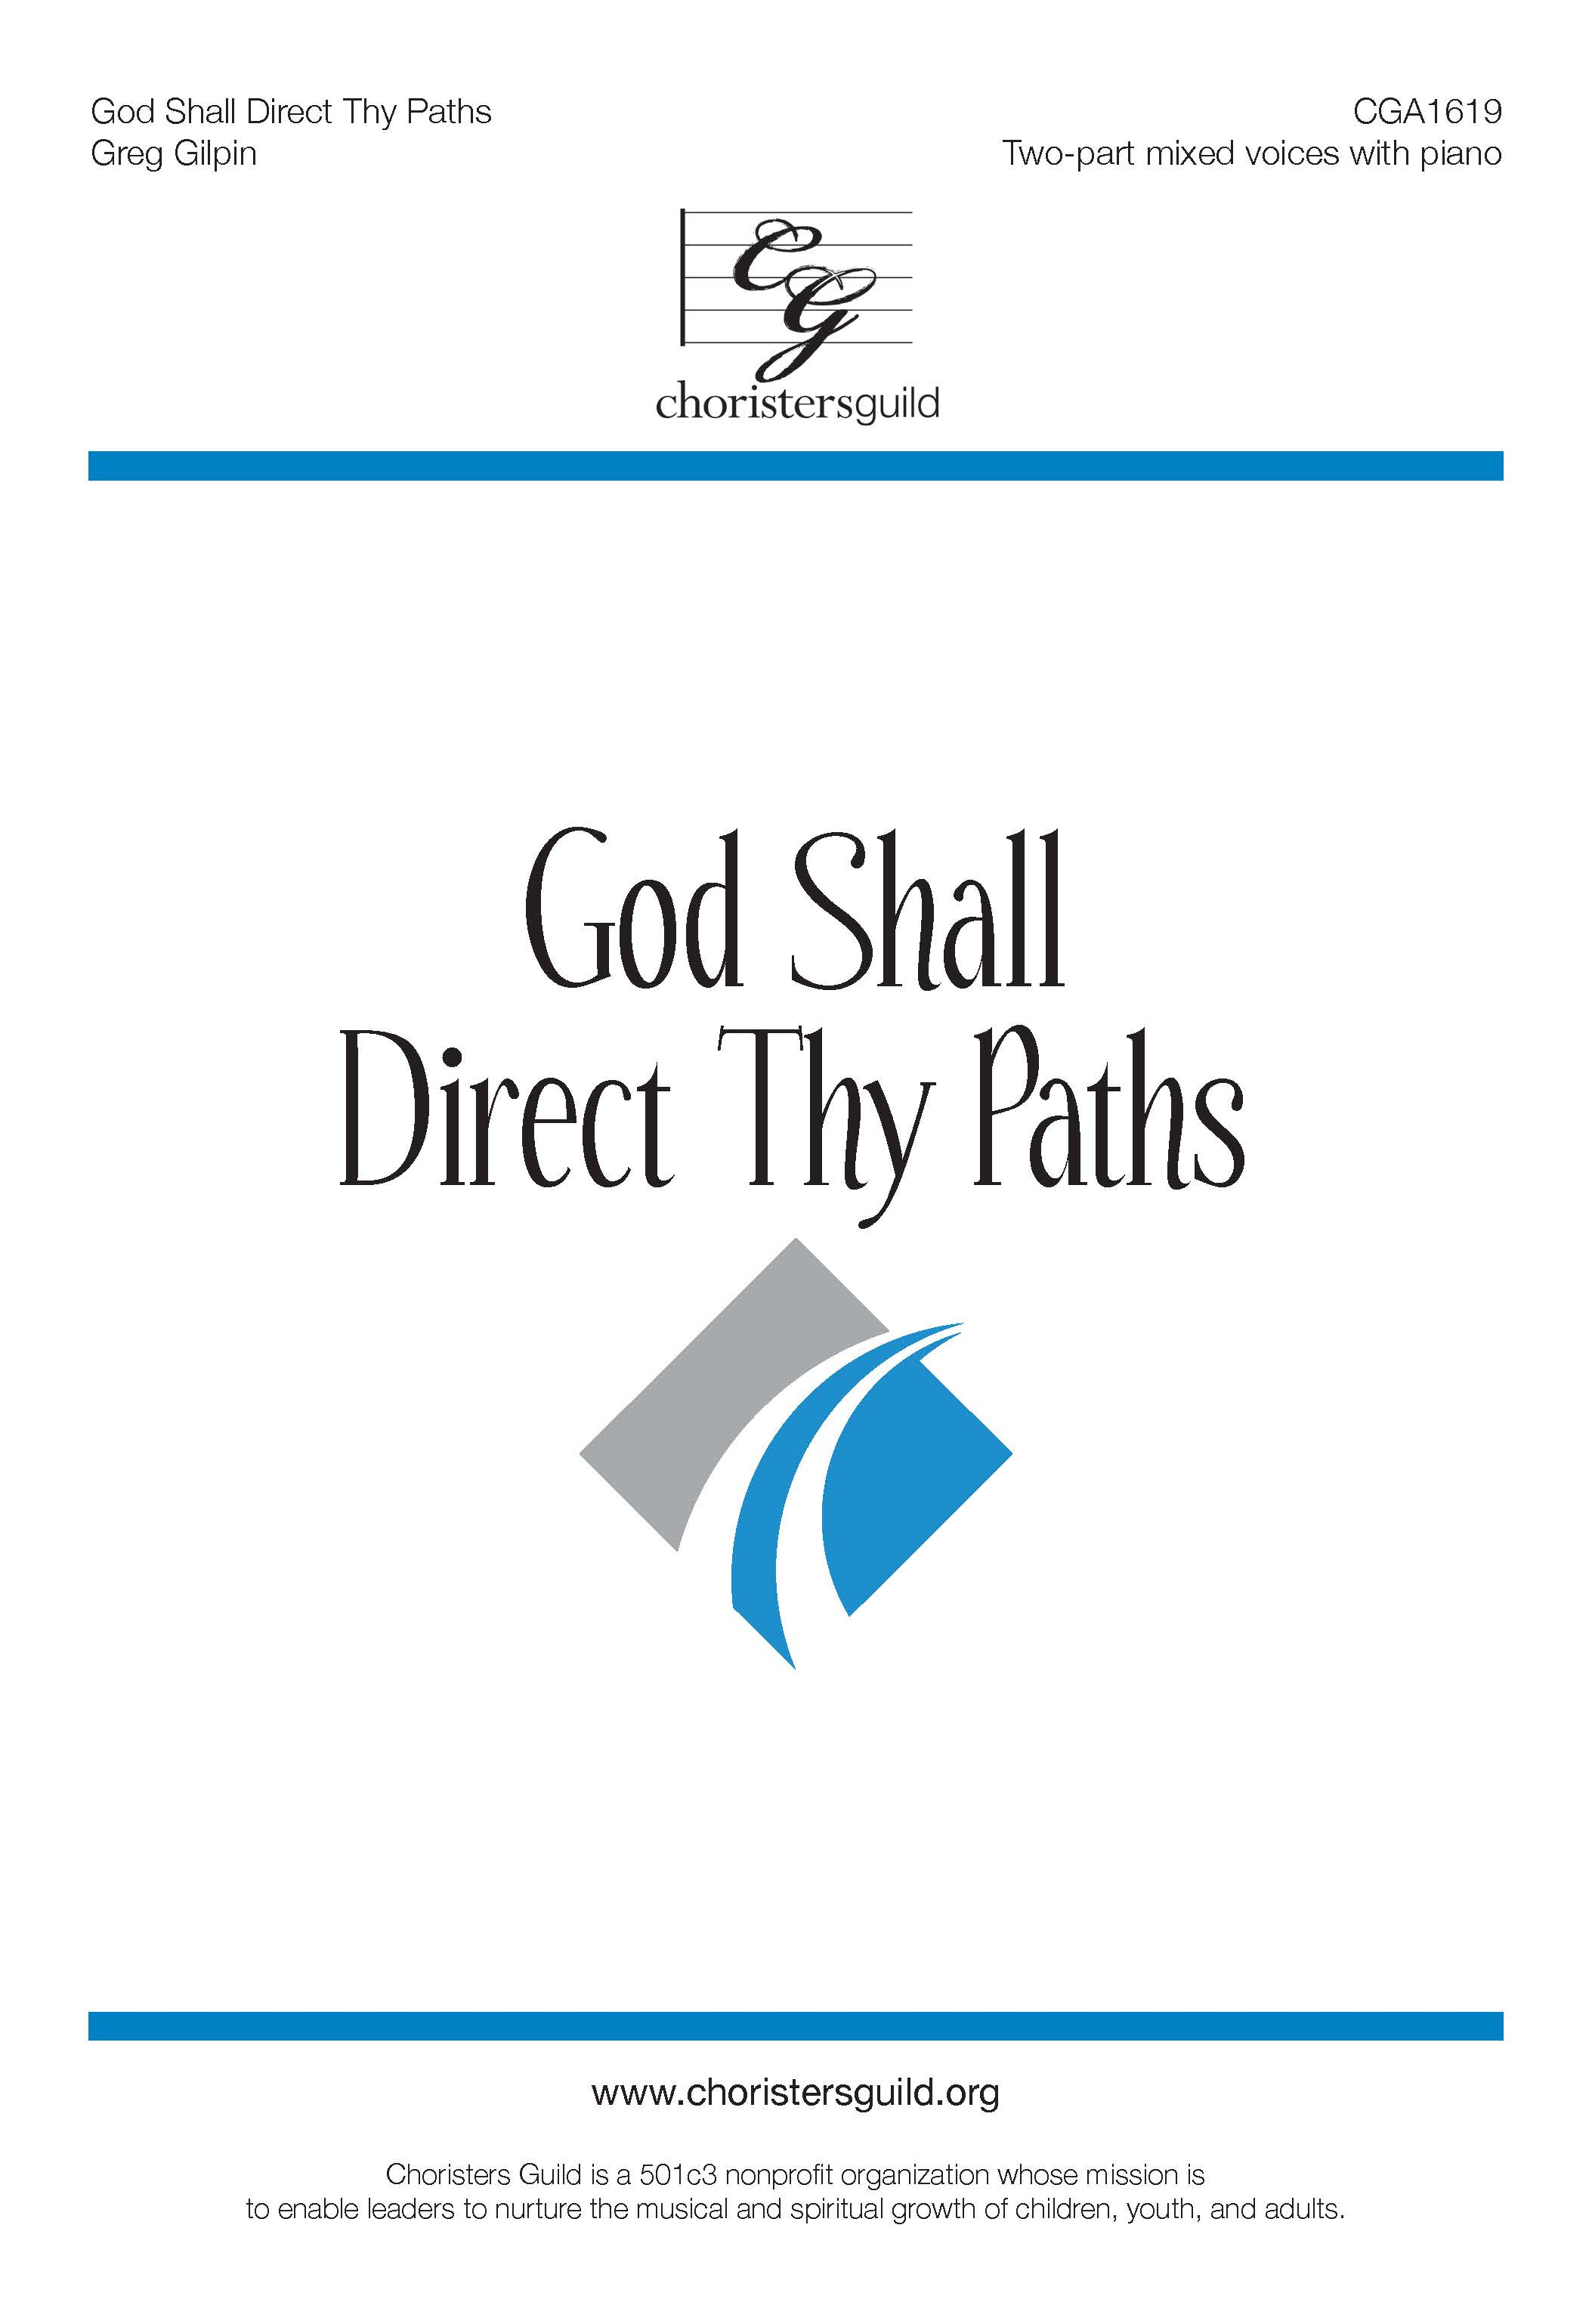 God Shall Direct Thy Paths - Two-part mixed